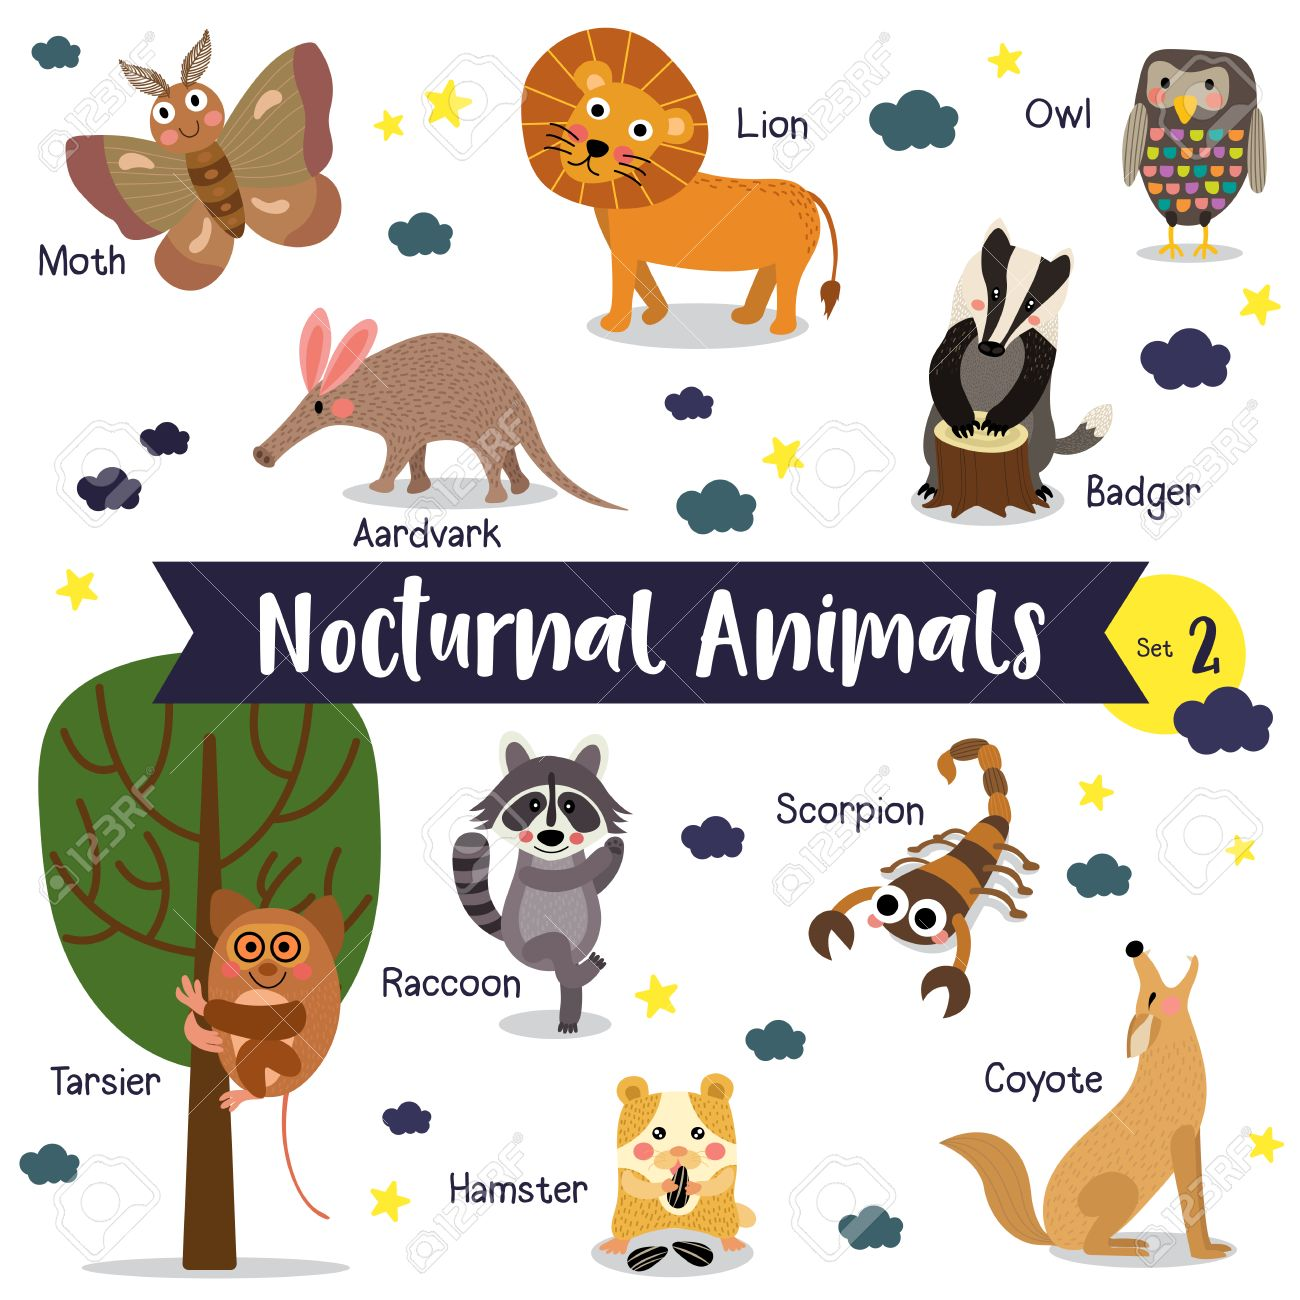 Nocturnal Animals cartoon on white background with animal name